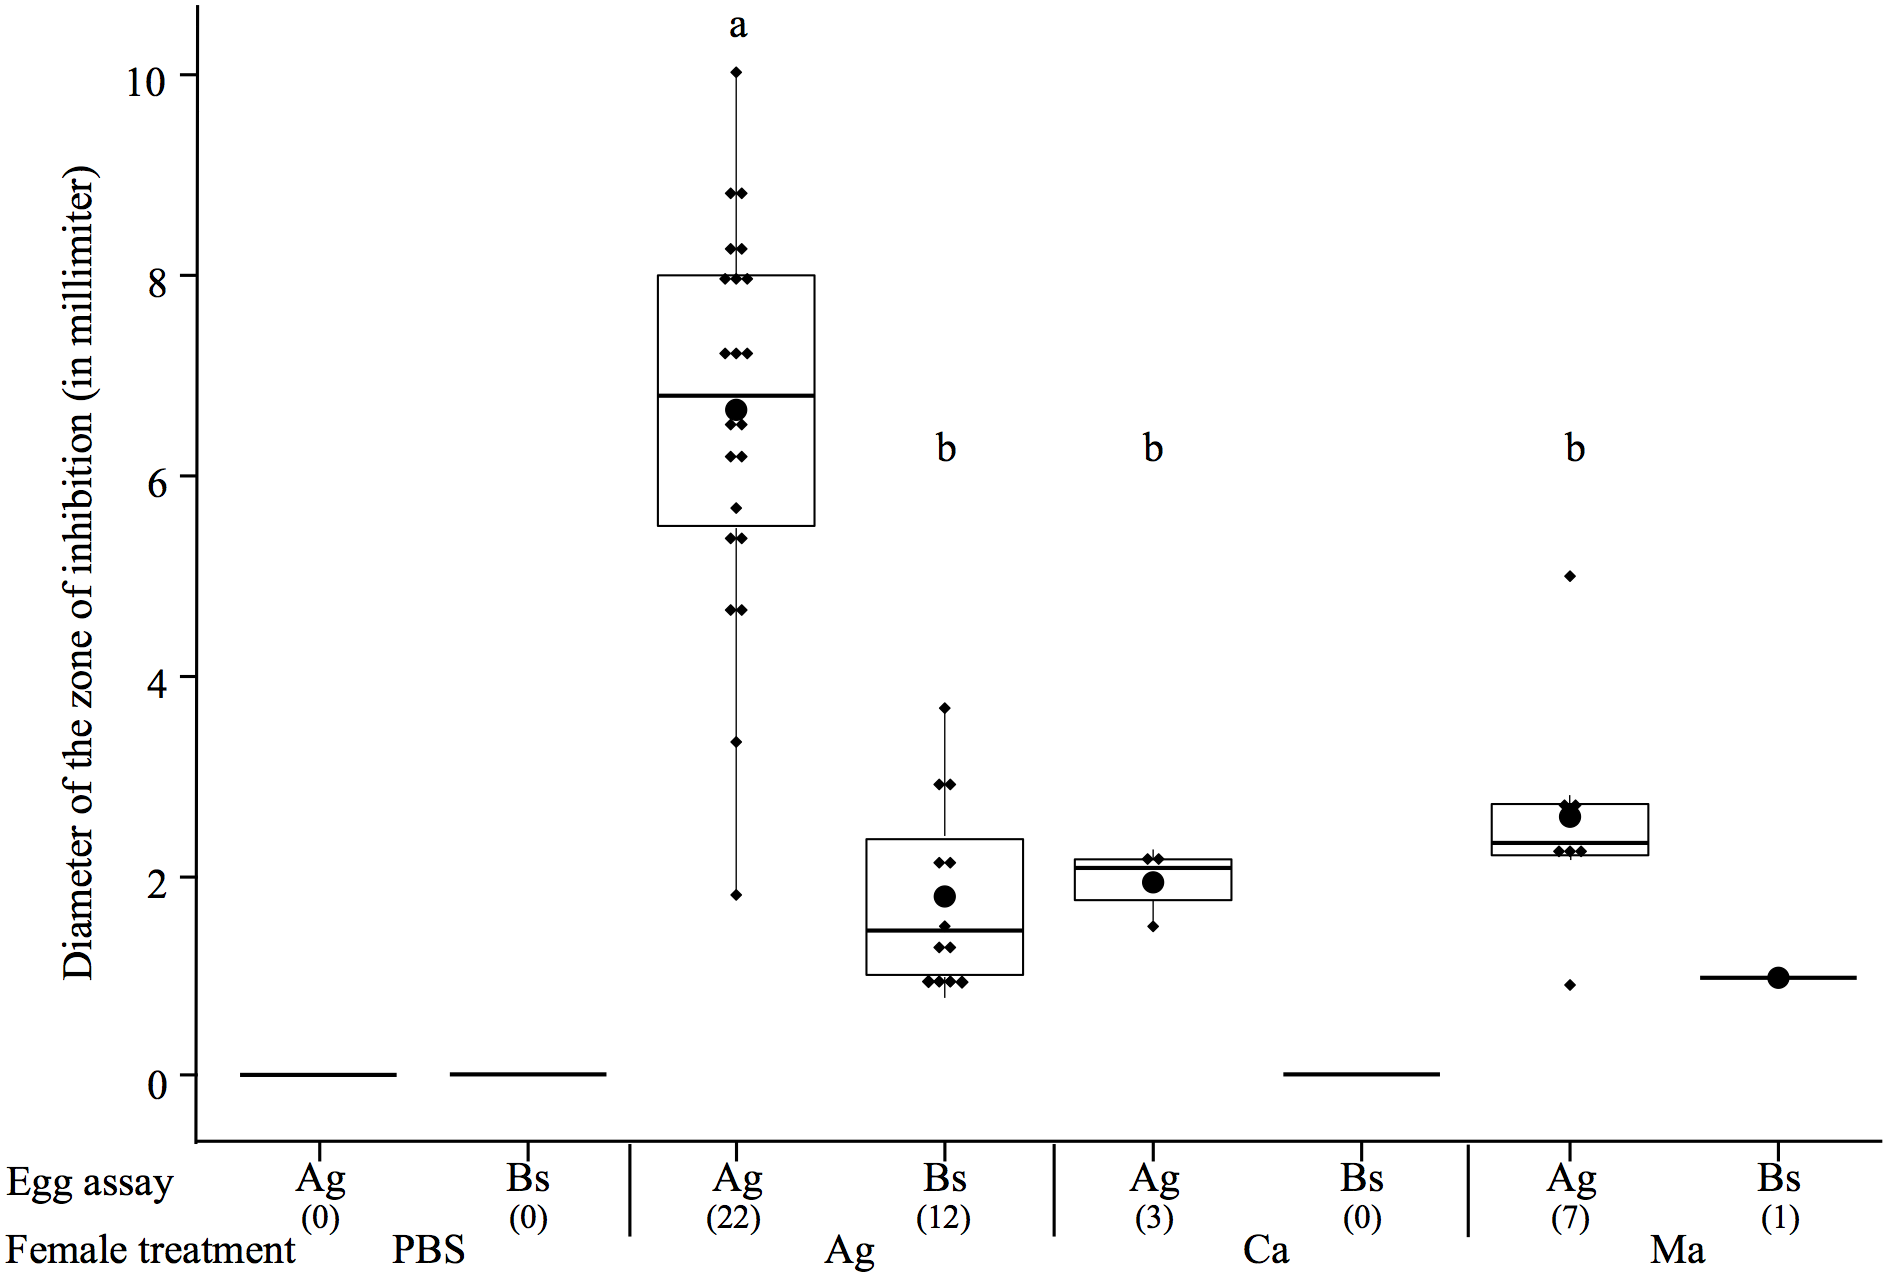 Boxplot showing the mean diameter of the zone of inhibitions (in mm) of protected egg extracts according to the microorganism on which they were tested (egg assay) and the maternal microbial treatment.